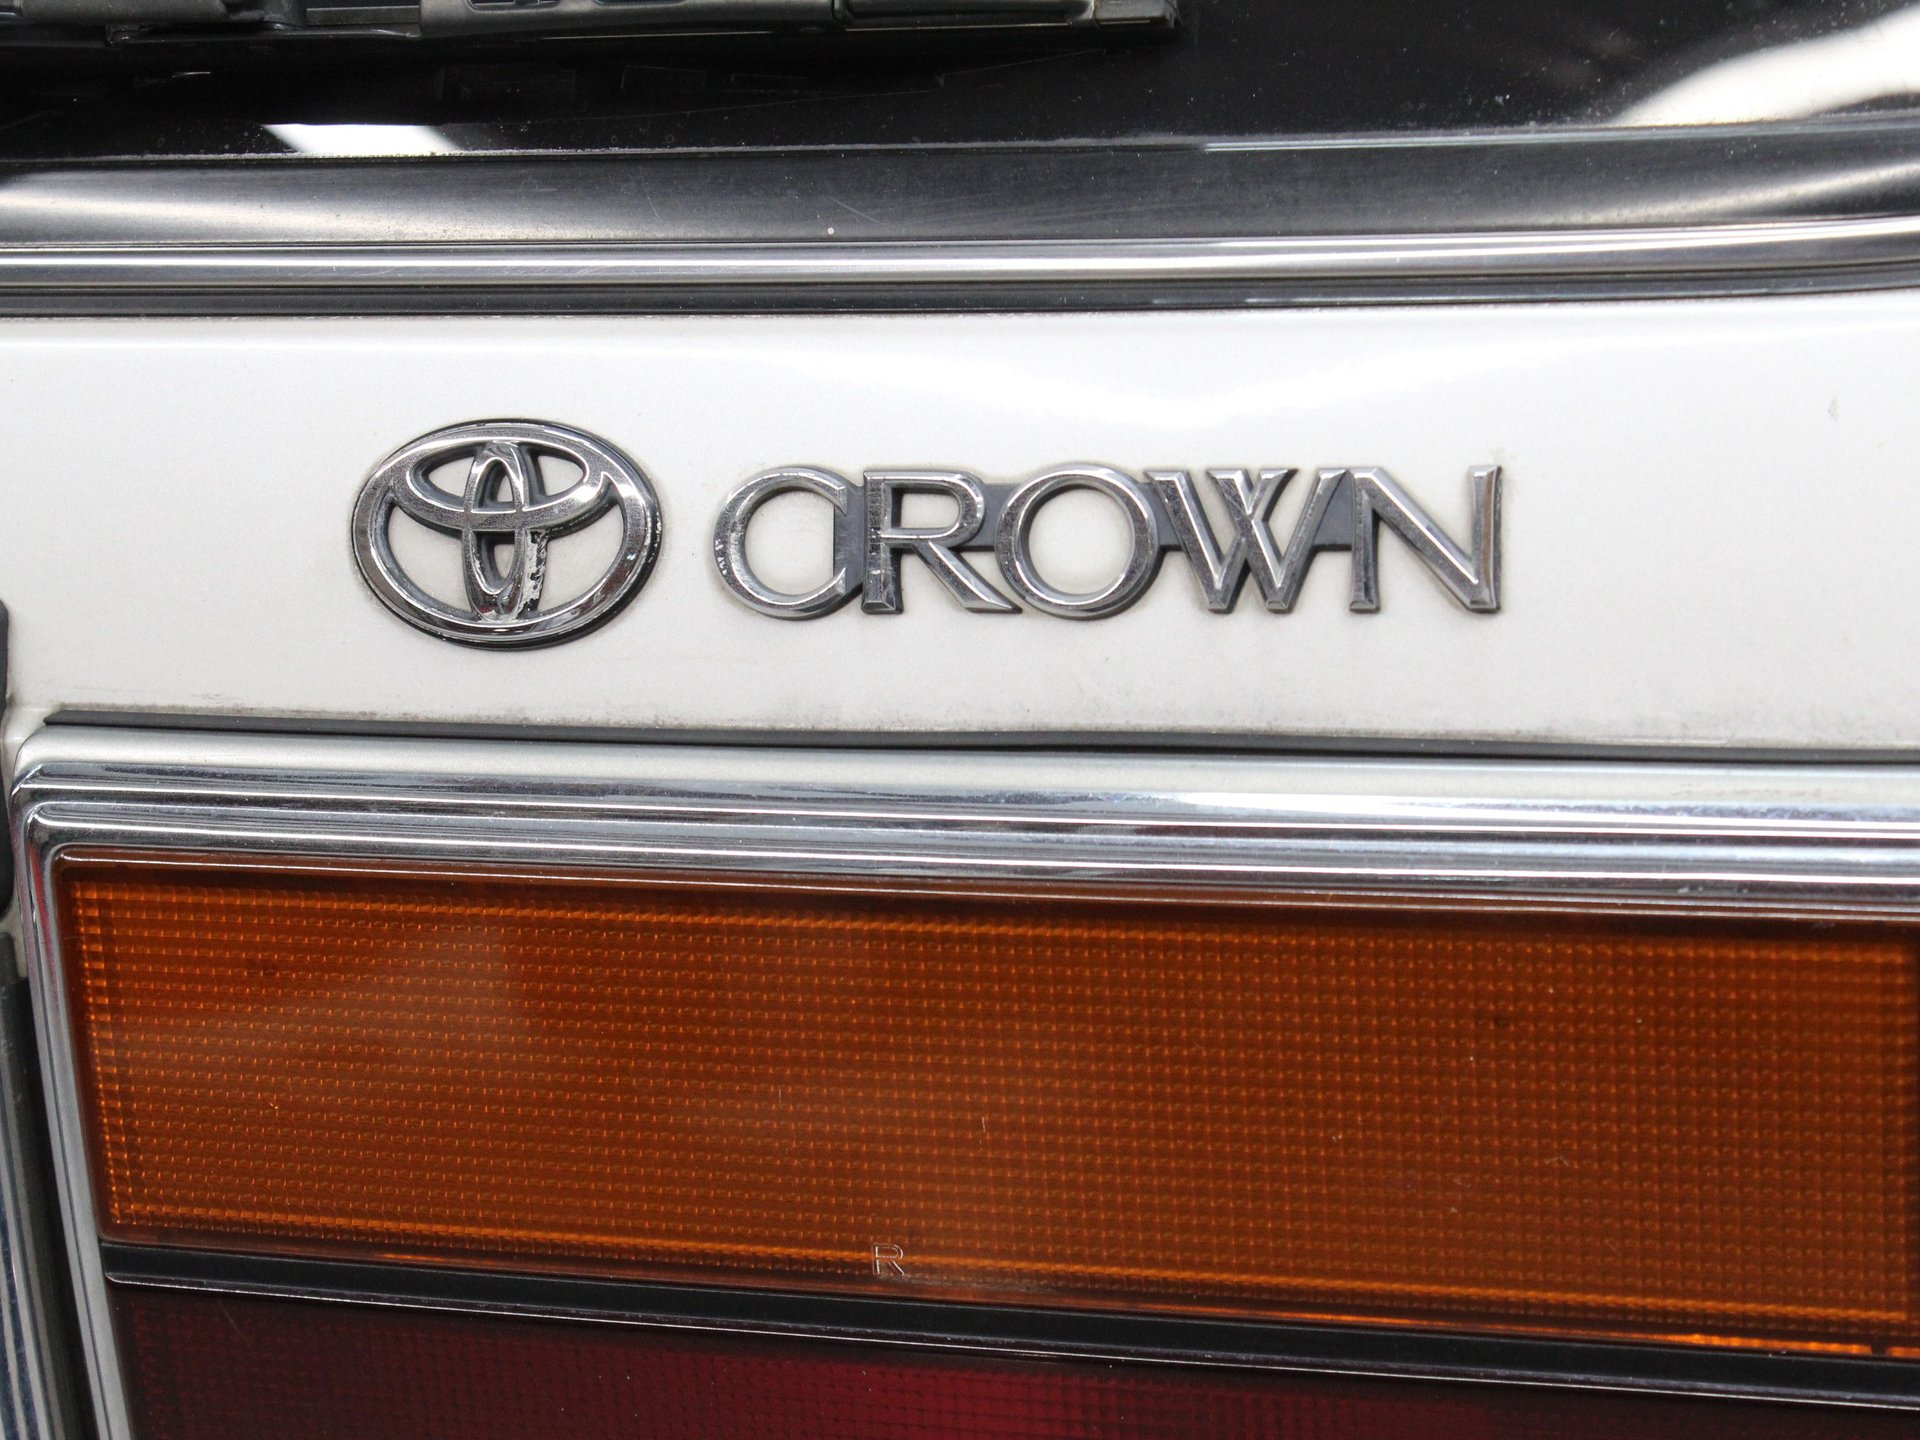 1992 Toyota Crown